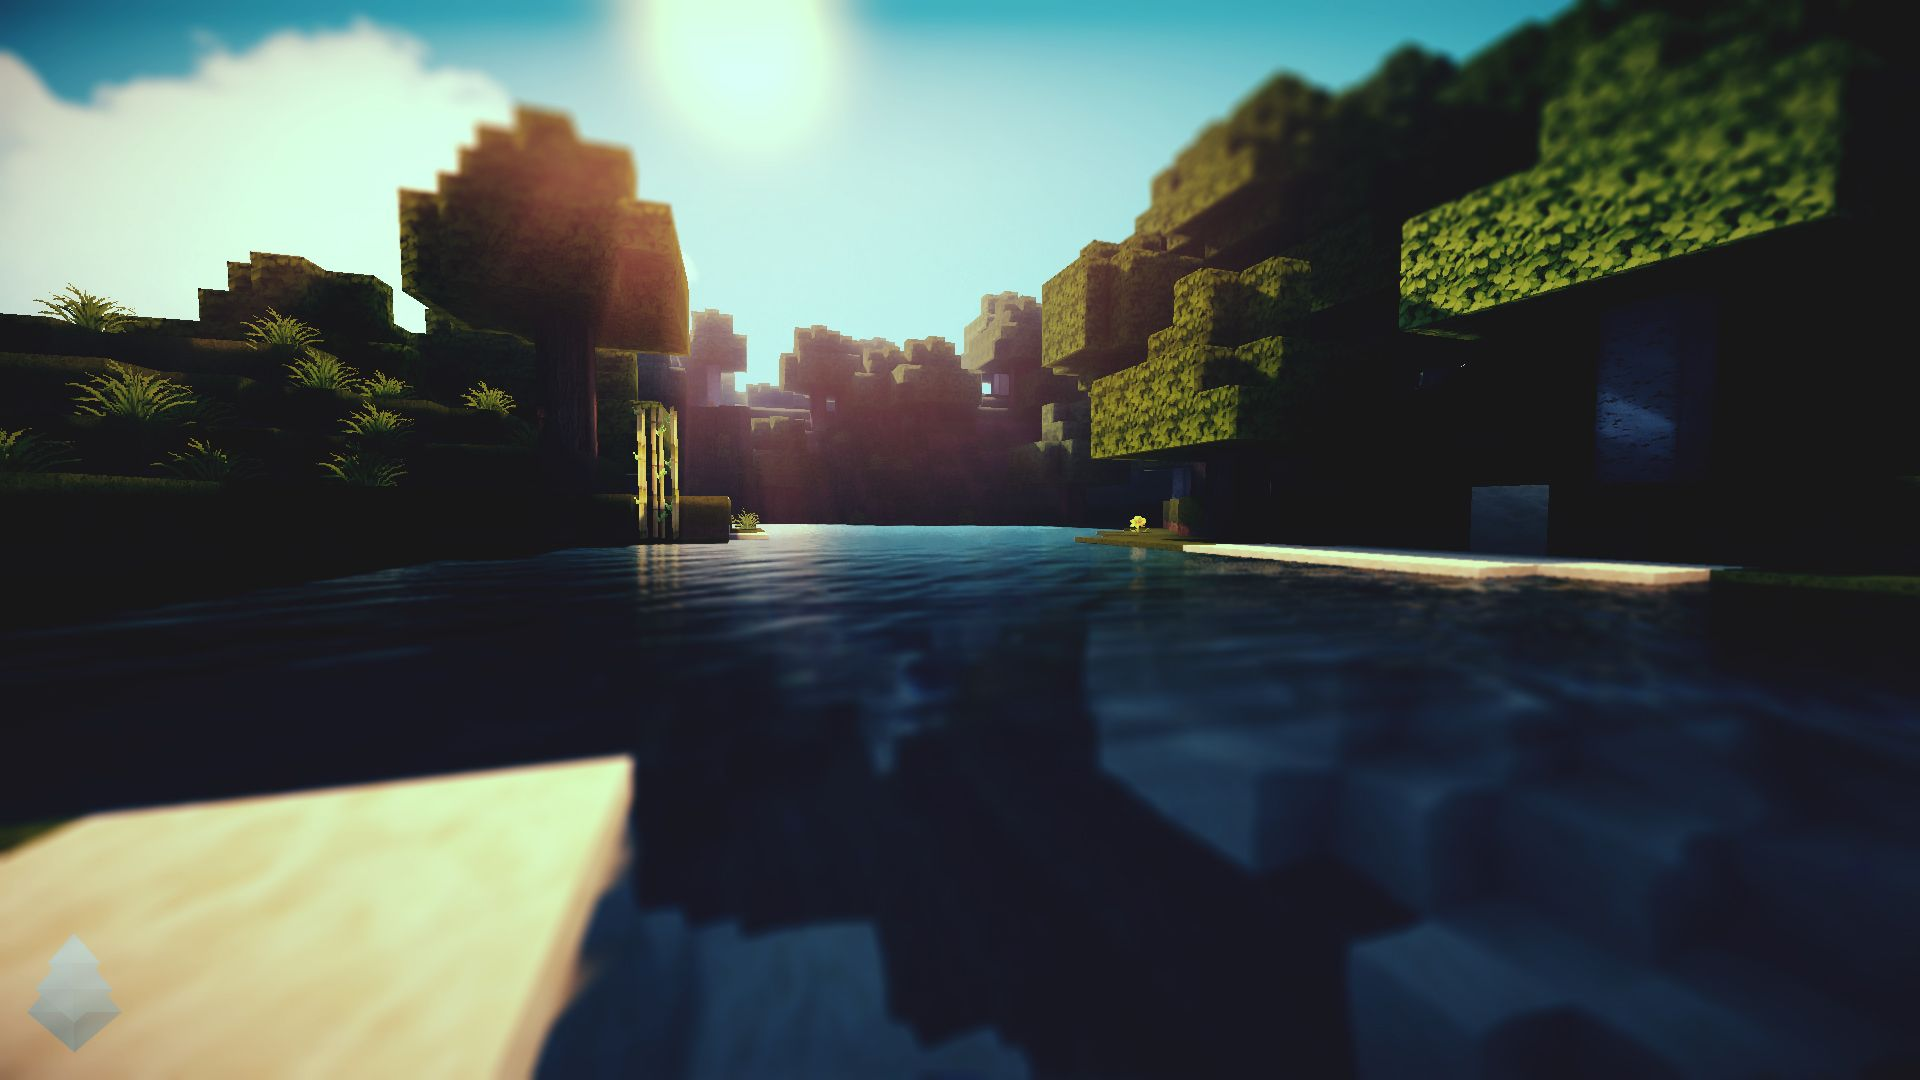 4K Minecraft Wallpapers - Top Free 4K Minecraft Backgrounds